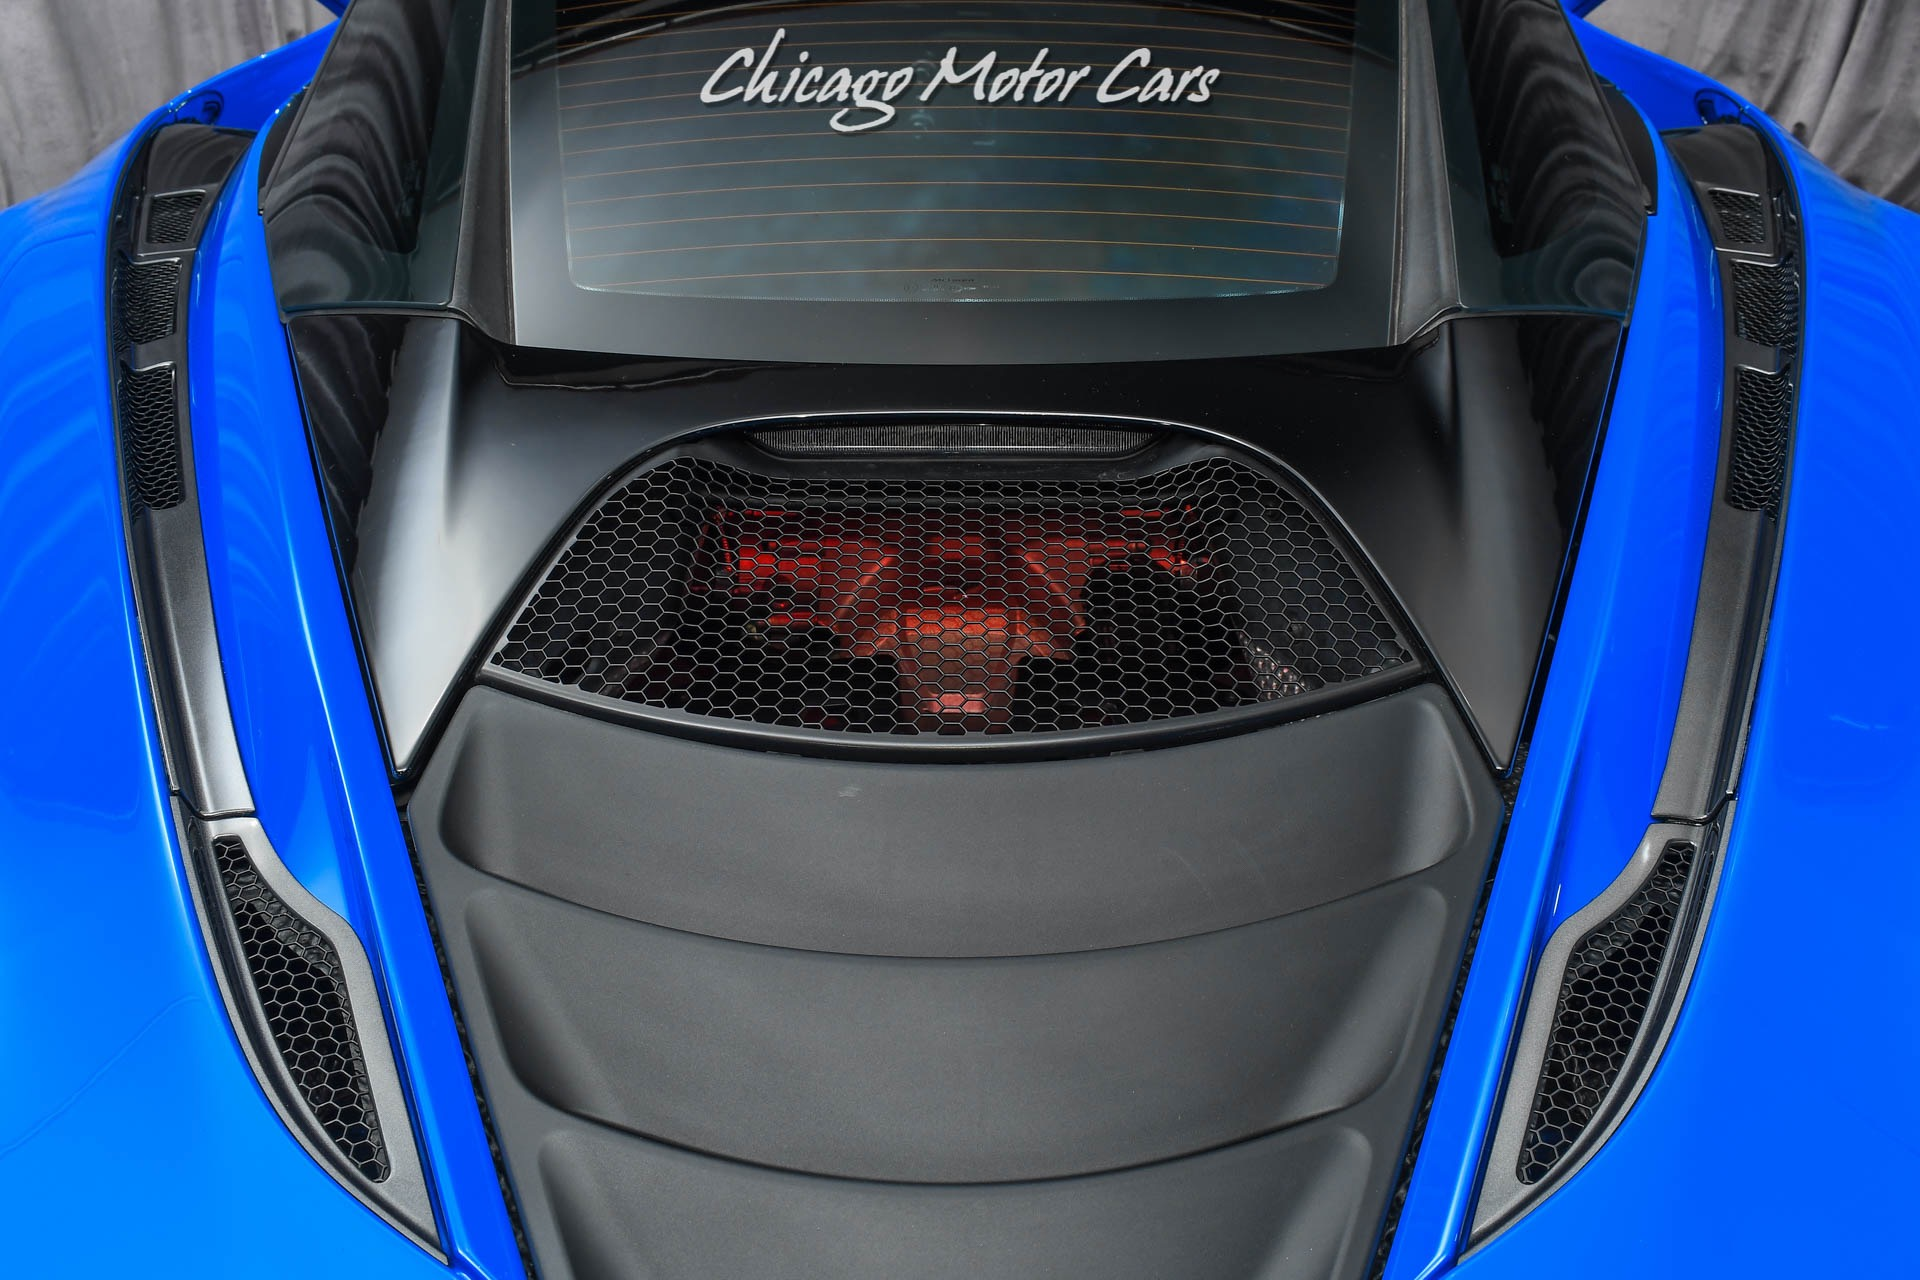 Used-2020-McLaren-720S-900HP-BUILT-BY-CANNONBALL-GARAGE-M-ENGINEERING-TUNE